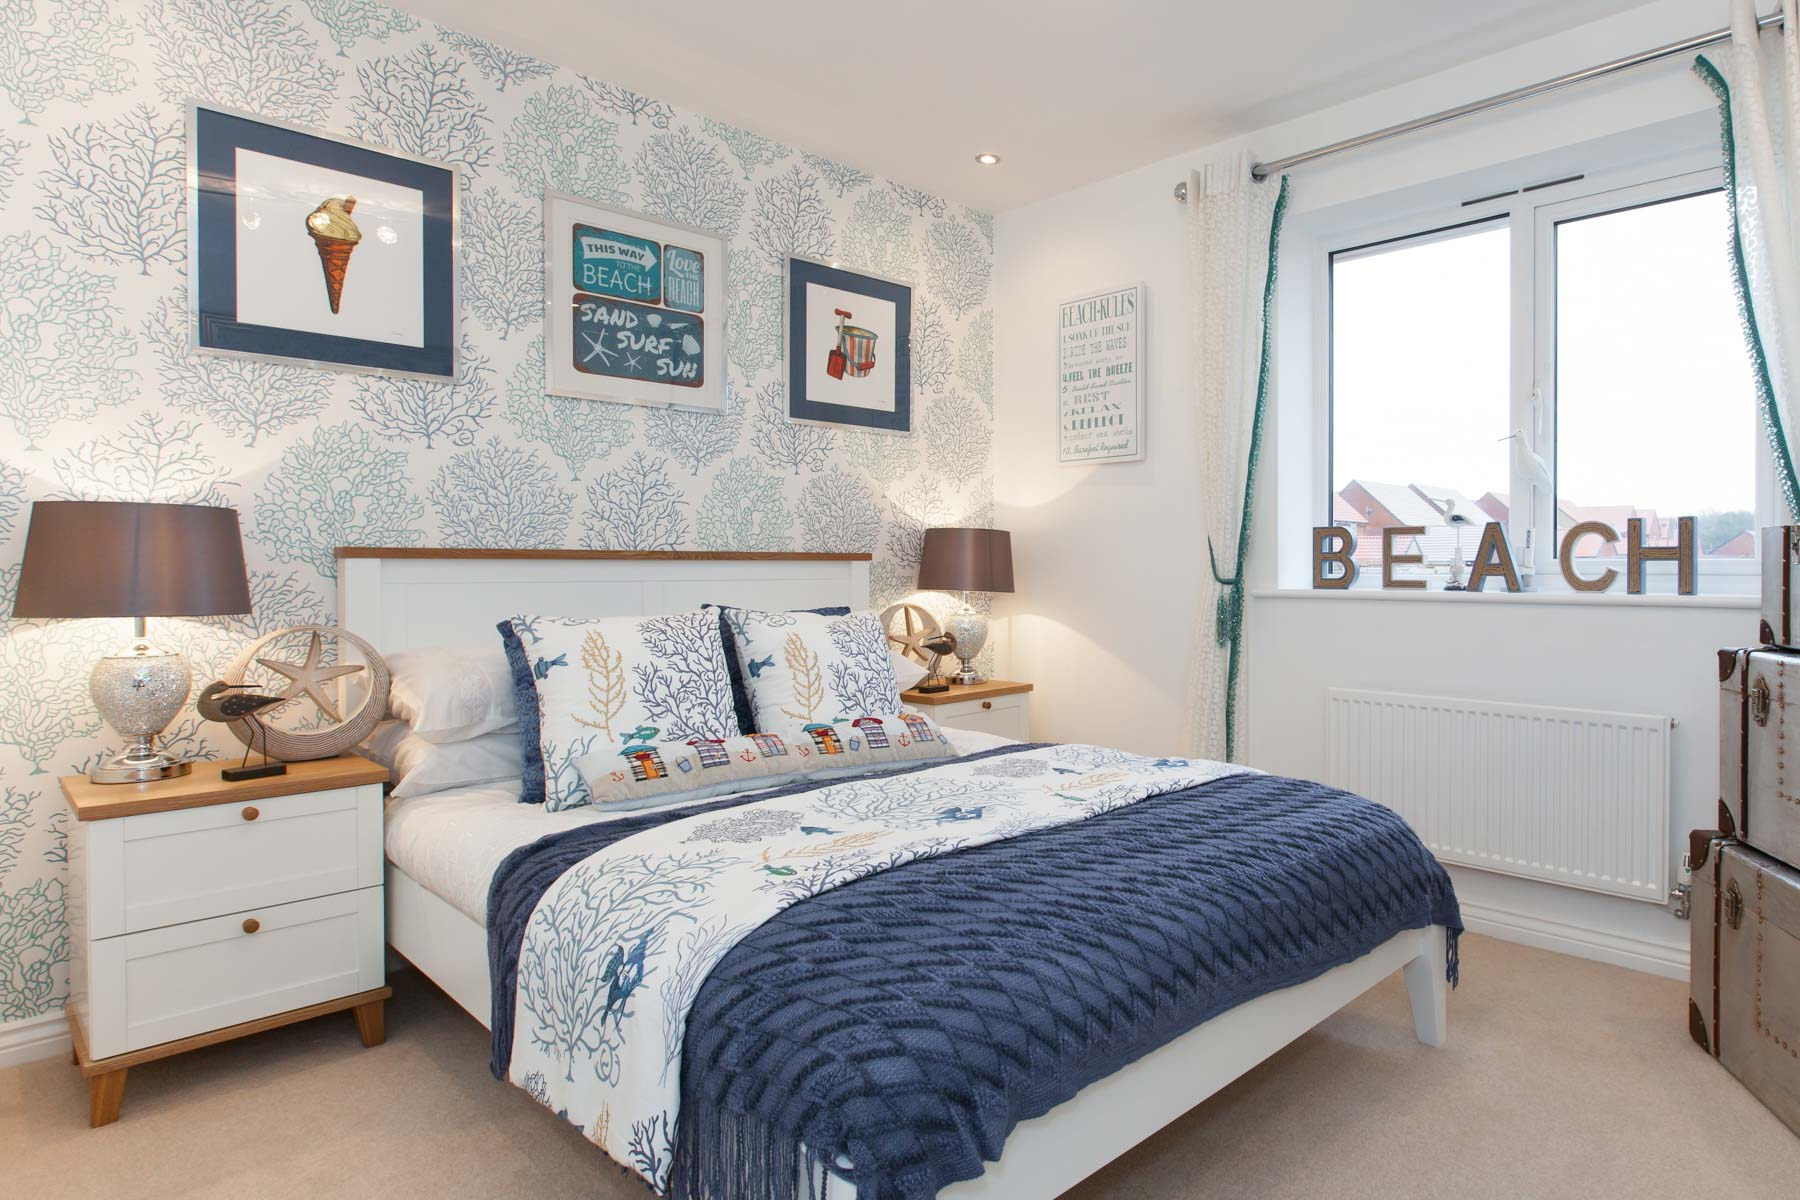 TW Exeter - Cornflowers at Cranbrook - Thornford example bedroom 3